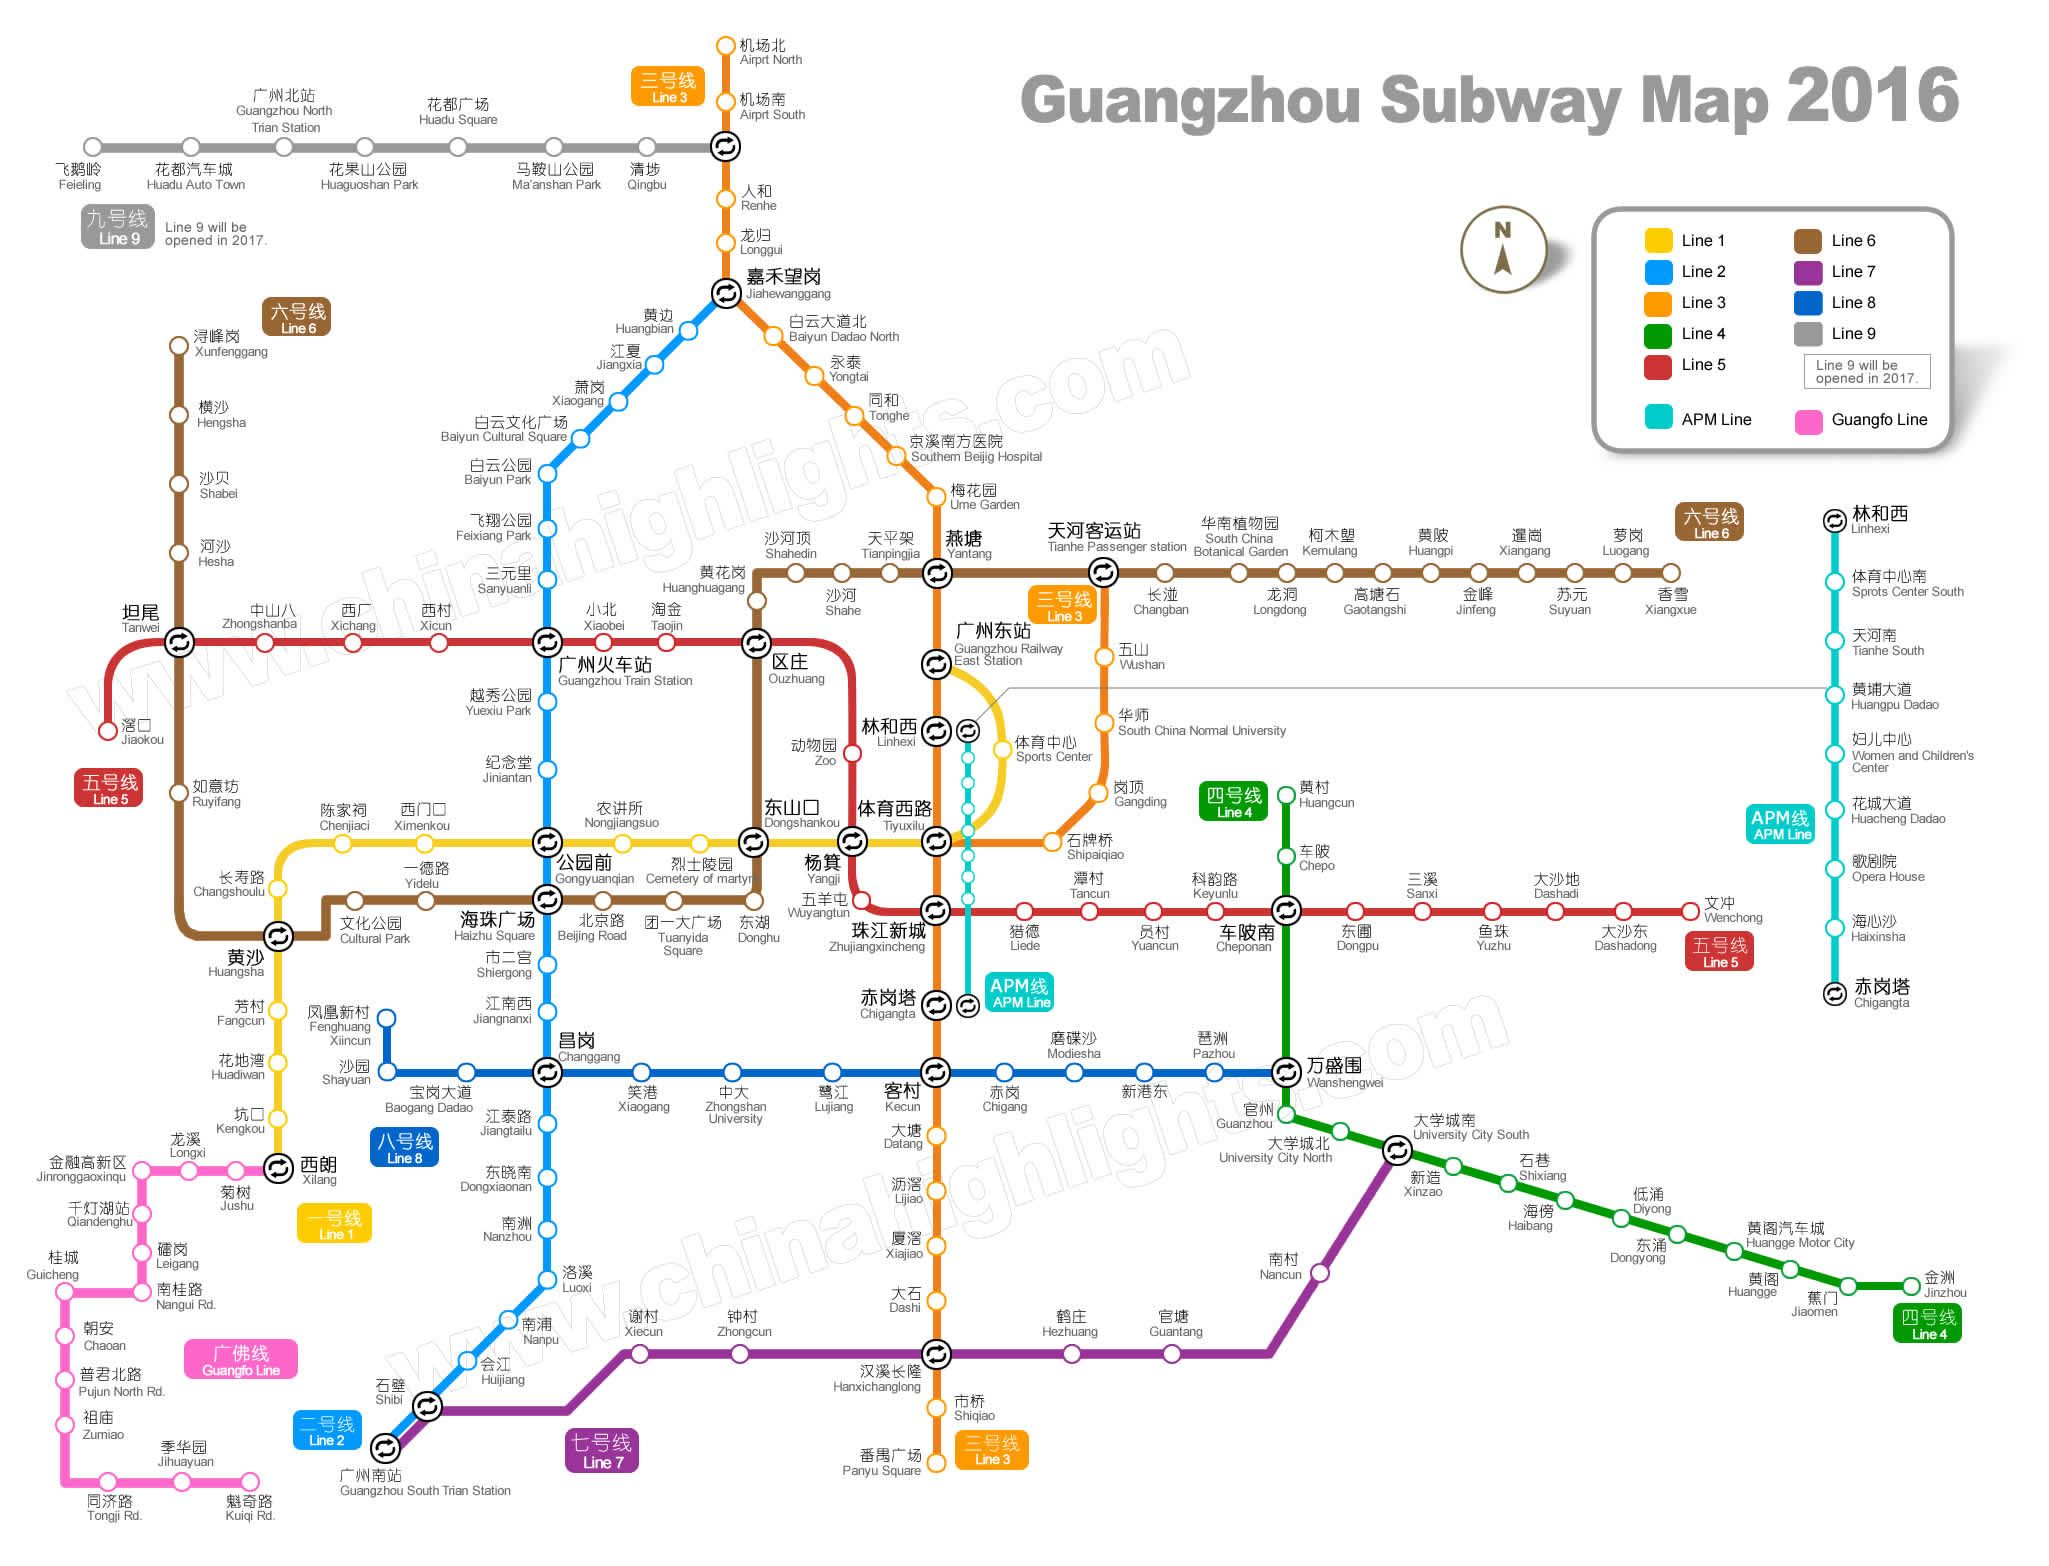 Toei Subway Map Pdf.Guangzhou Metro Information For Tourists L5 Group 5 我的中國行